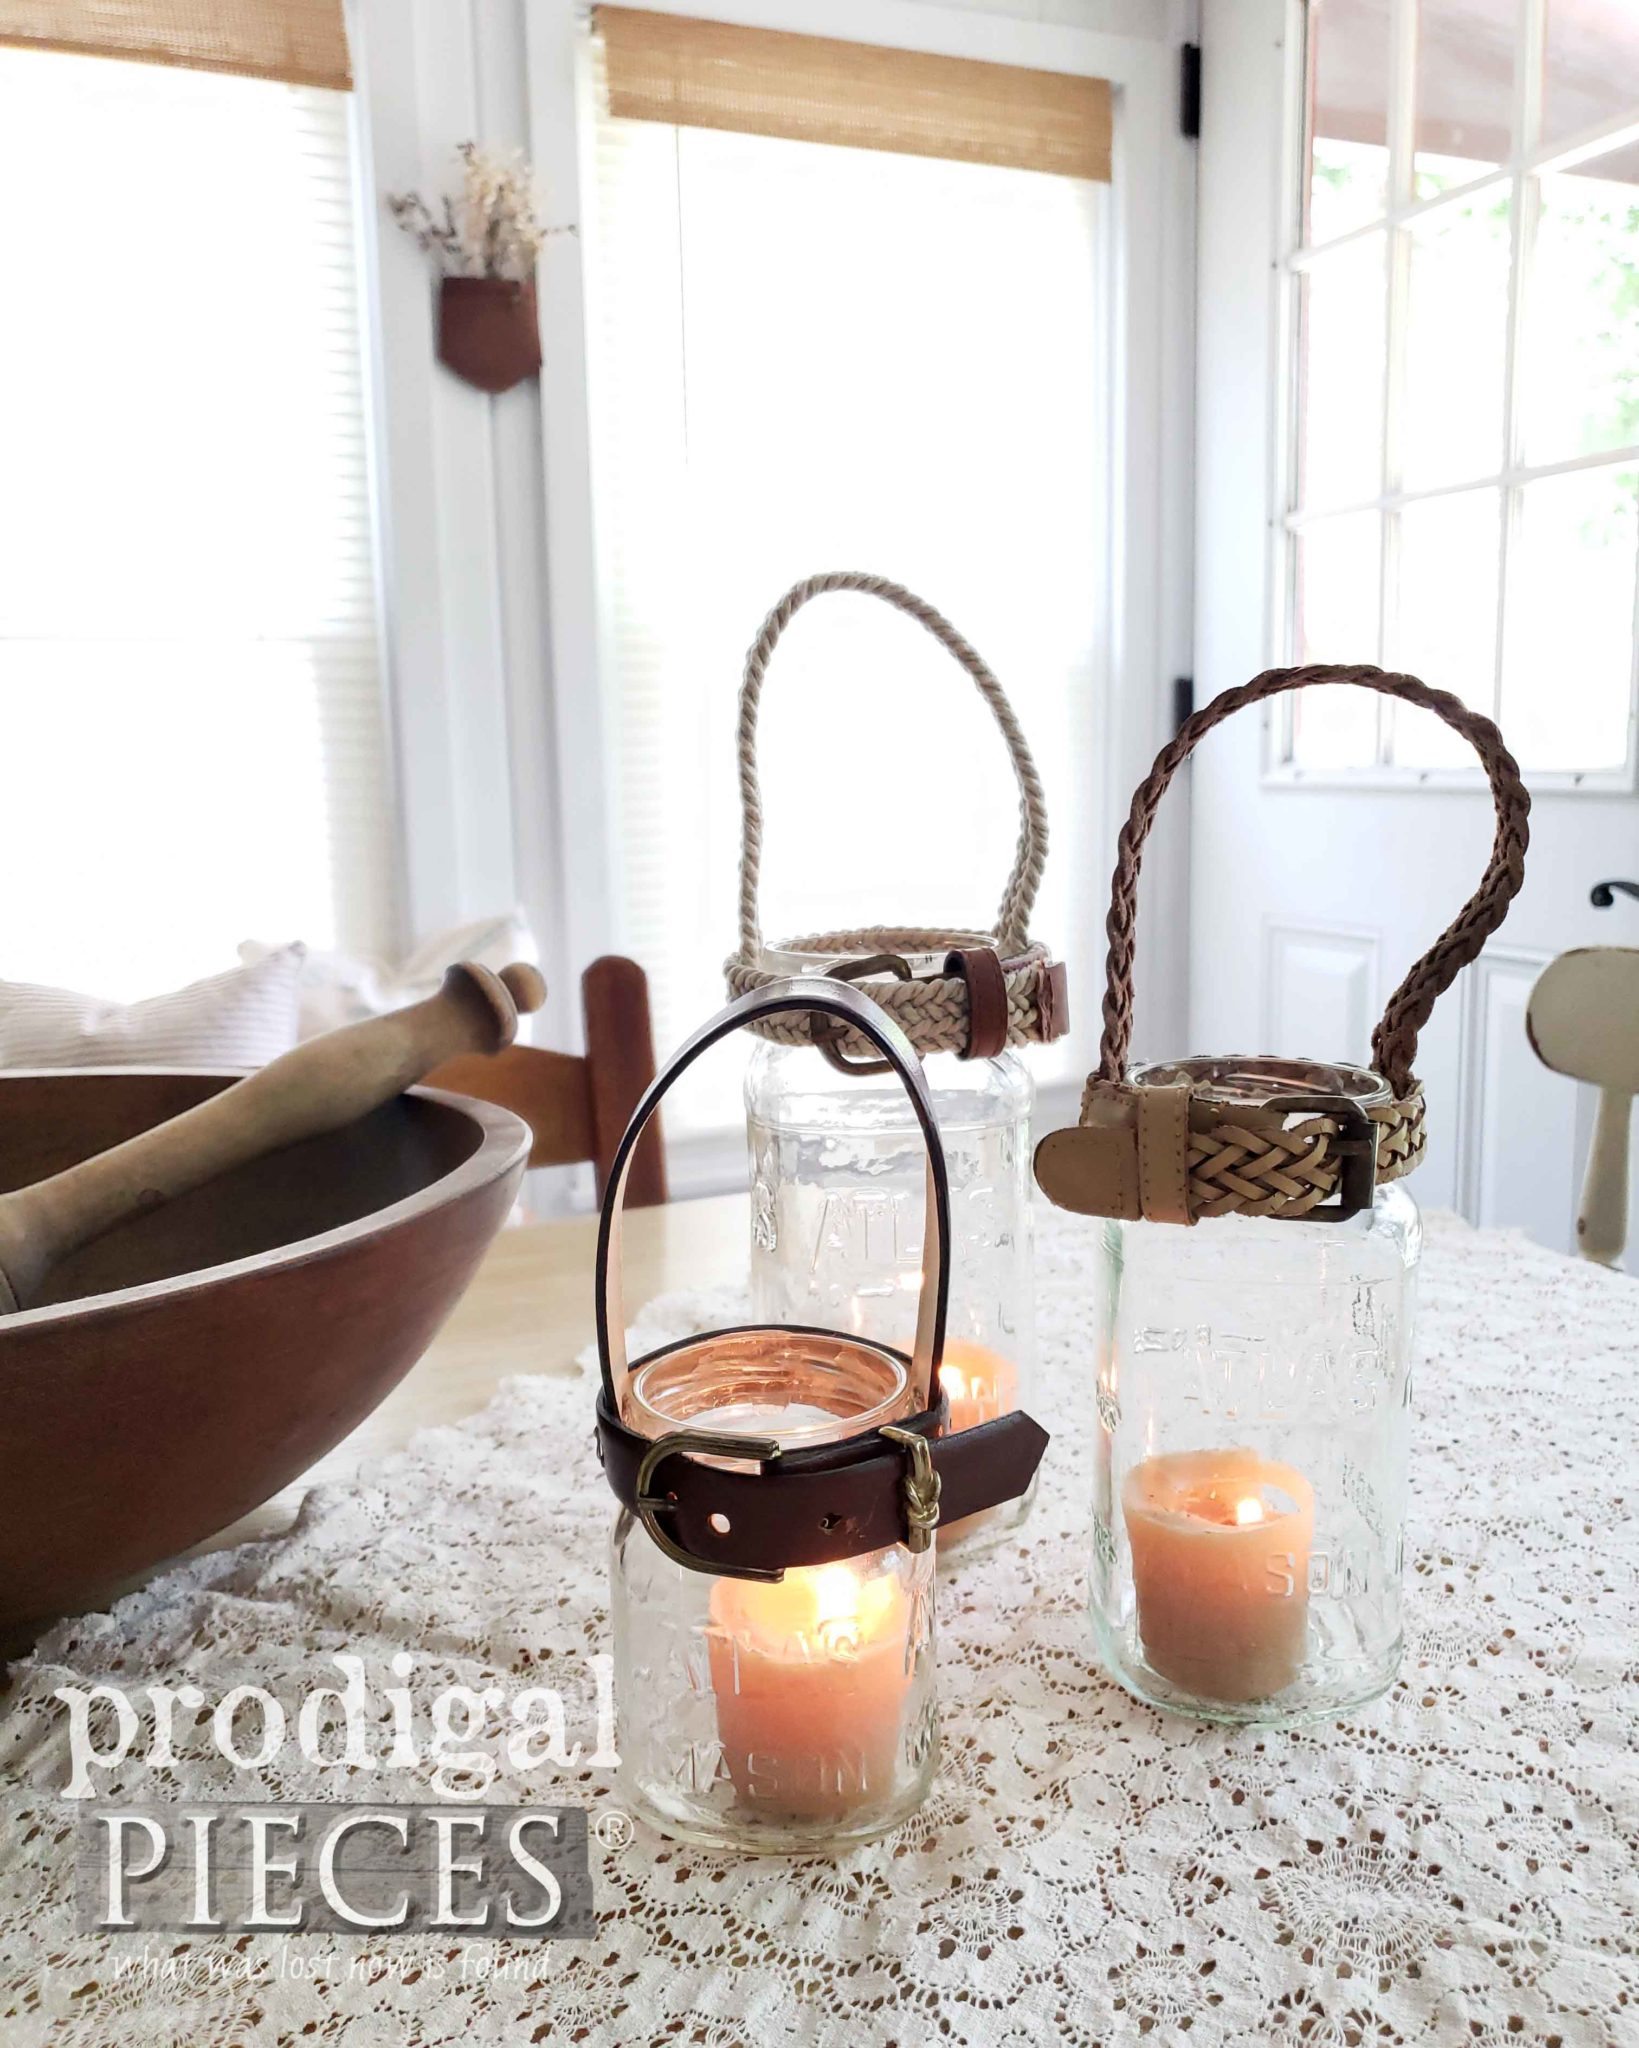 Farmhouse Style Canning Jar Candle Holders Made from Upcycled Belts by Larissa of Prodigal Pieces | prodigalpieces.com #prodigalpieces #diy #home #farmhouse #homedecor